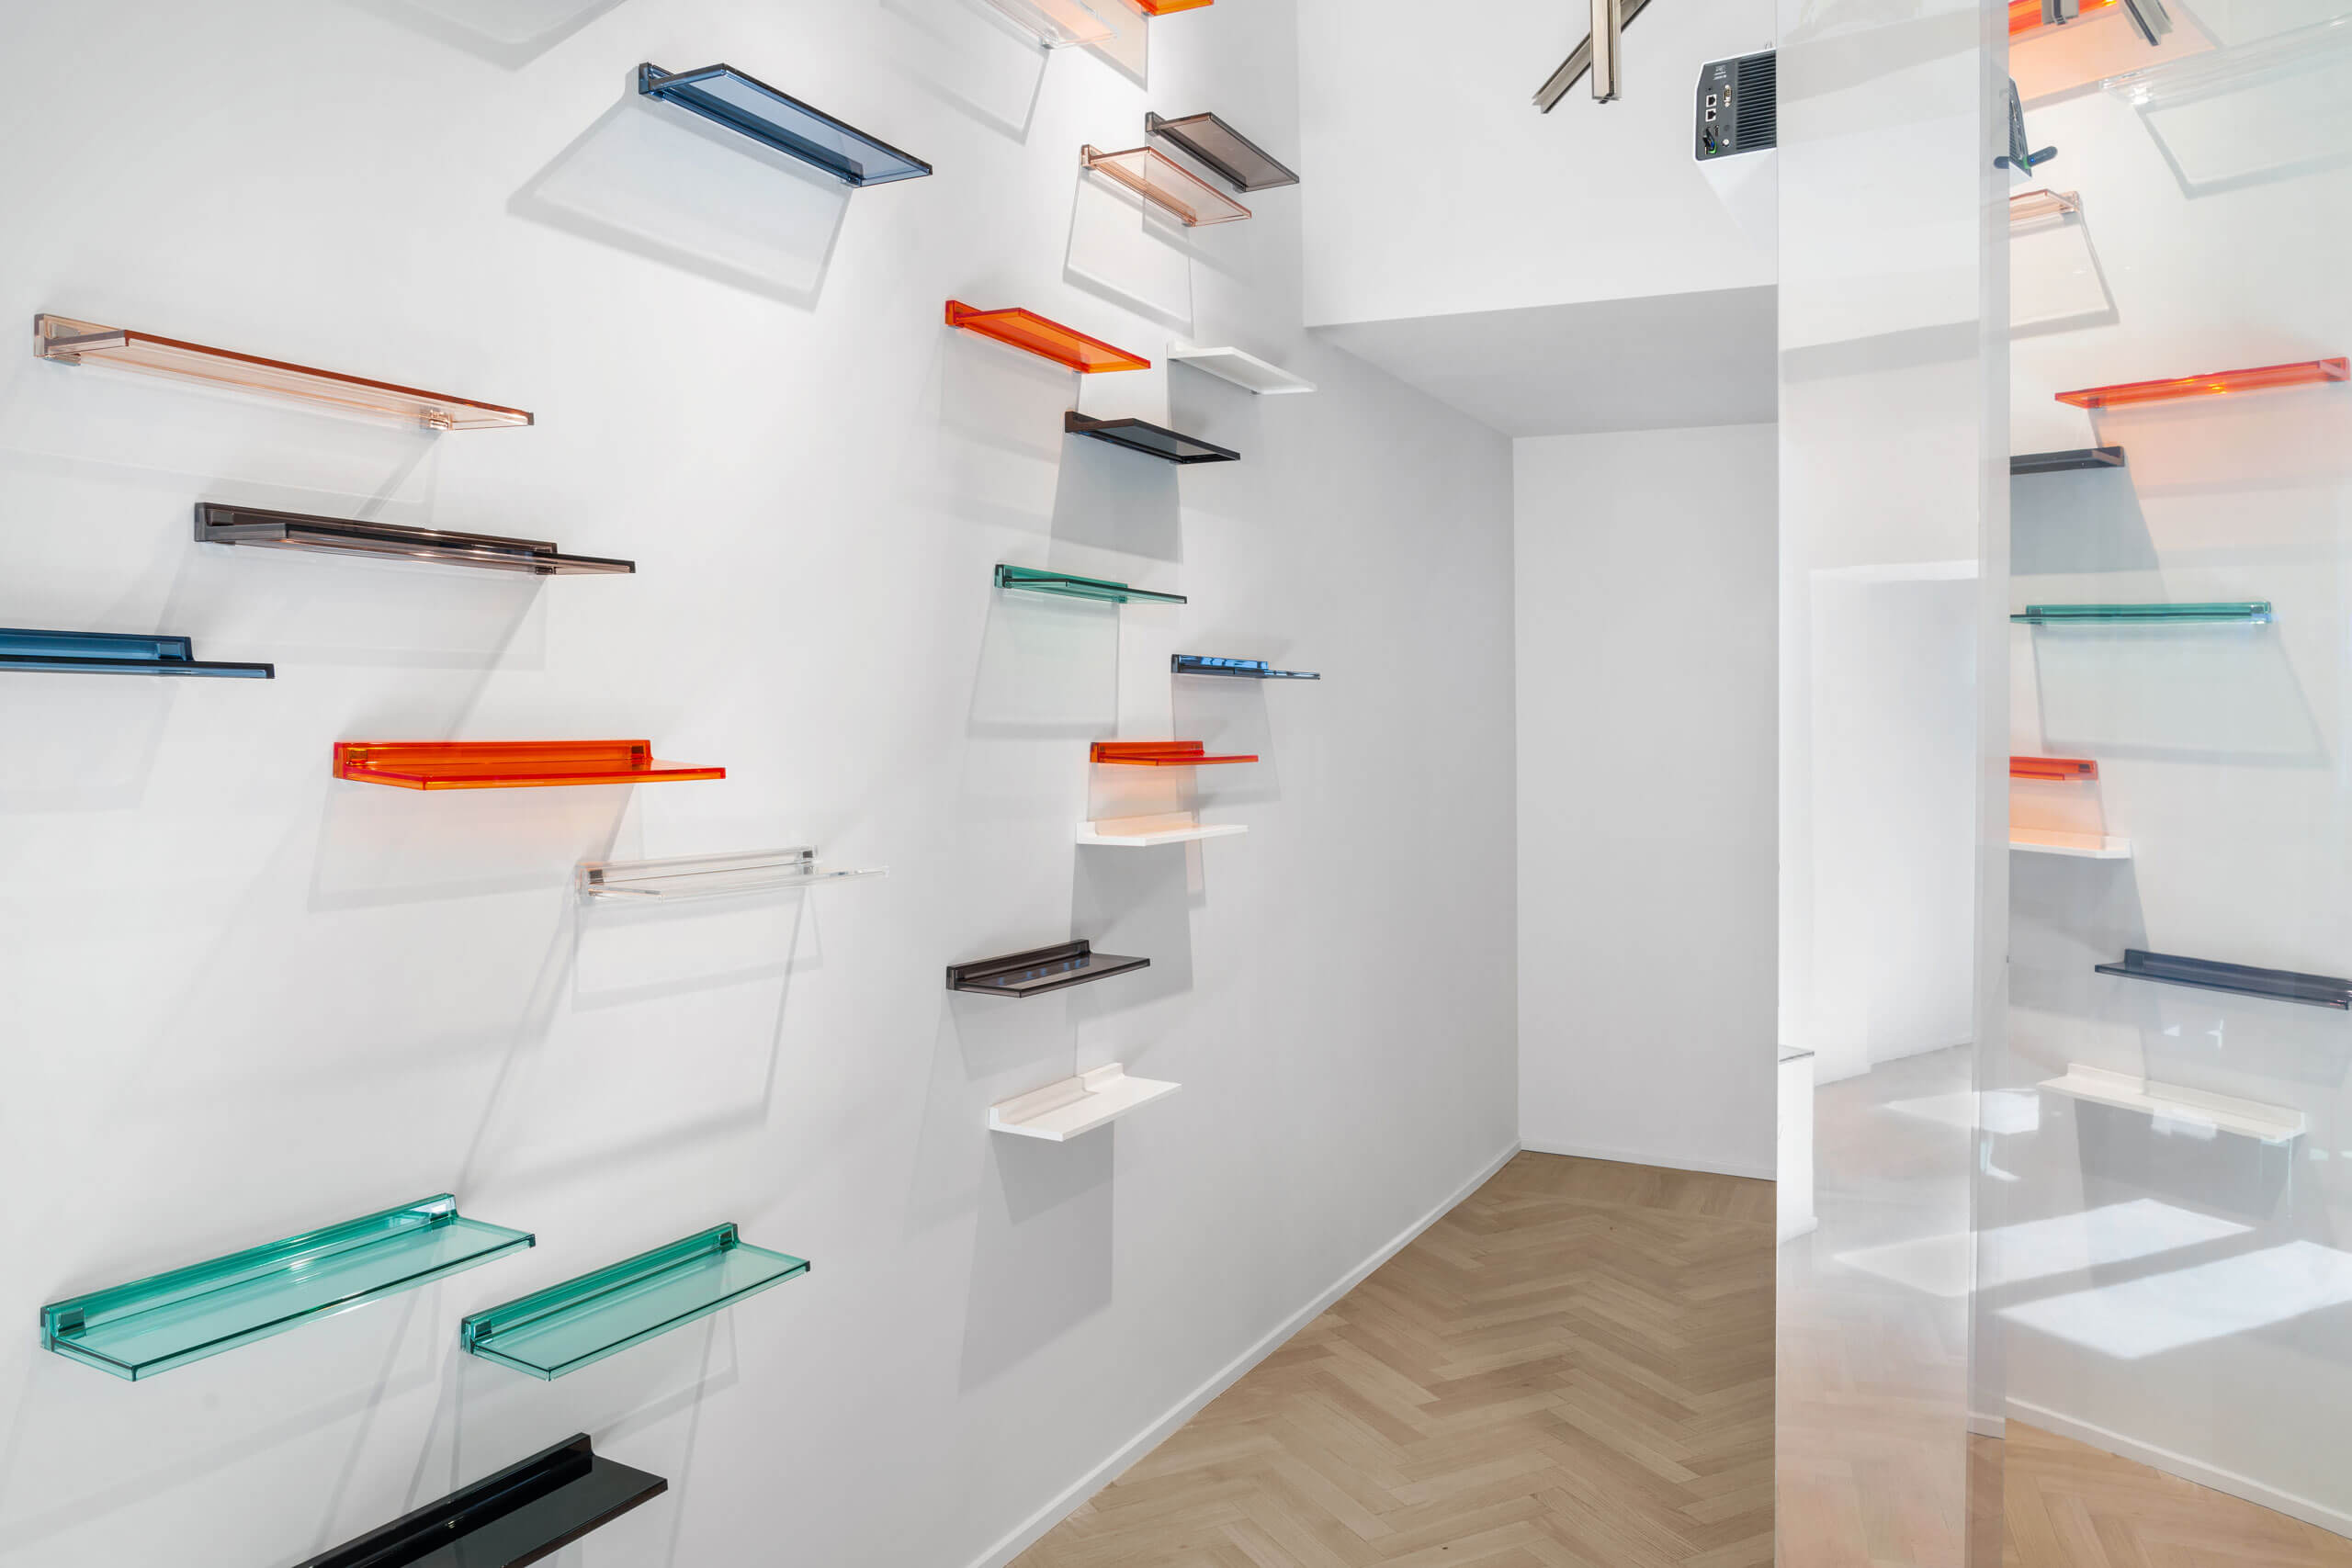 Colored semi-transparent shelves arranged on the wall of the main exhibition room of Laufen space Milano.